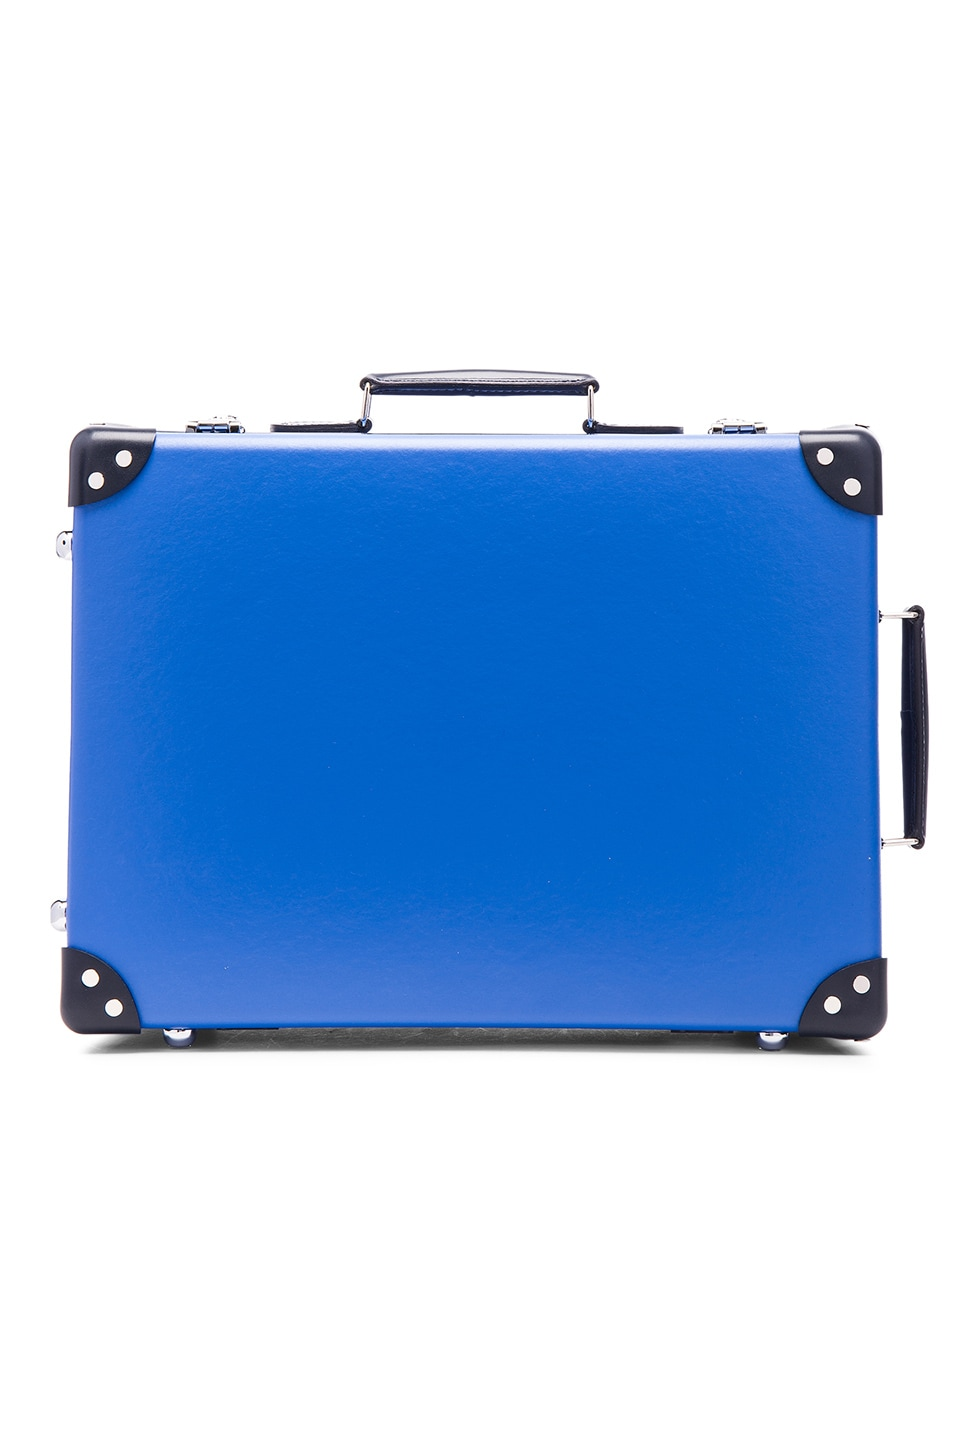 "GLOBE-TROTTER Globe-Trotter 18"" Cruise Trolley Case In Blue"